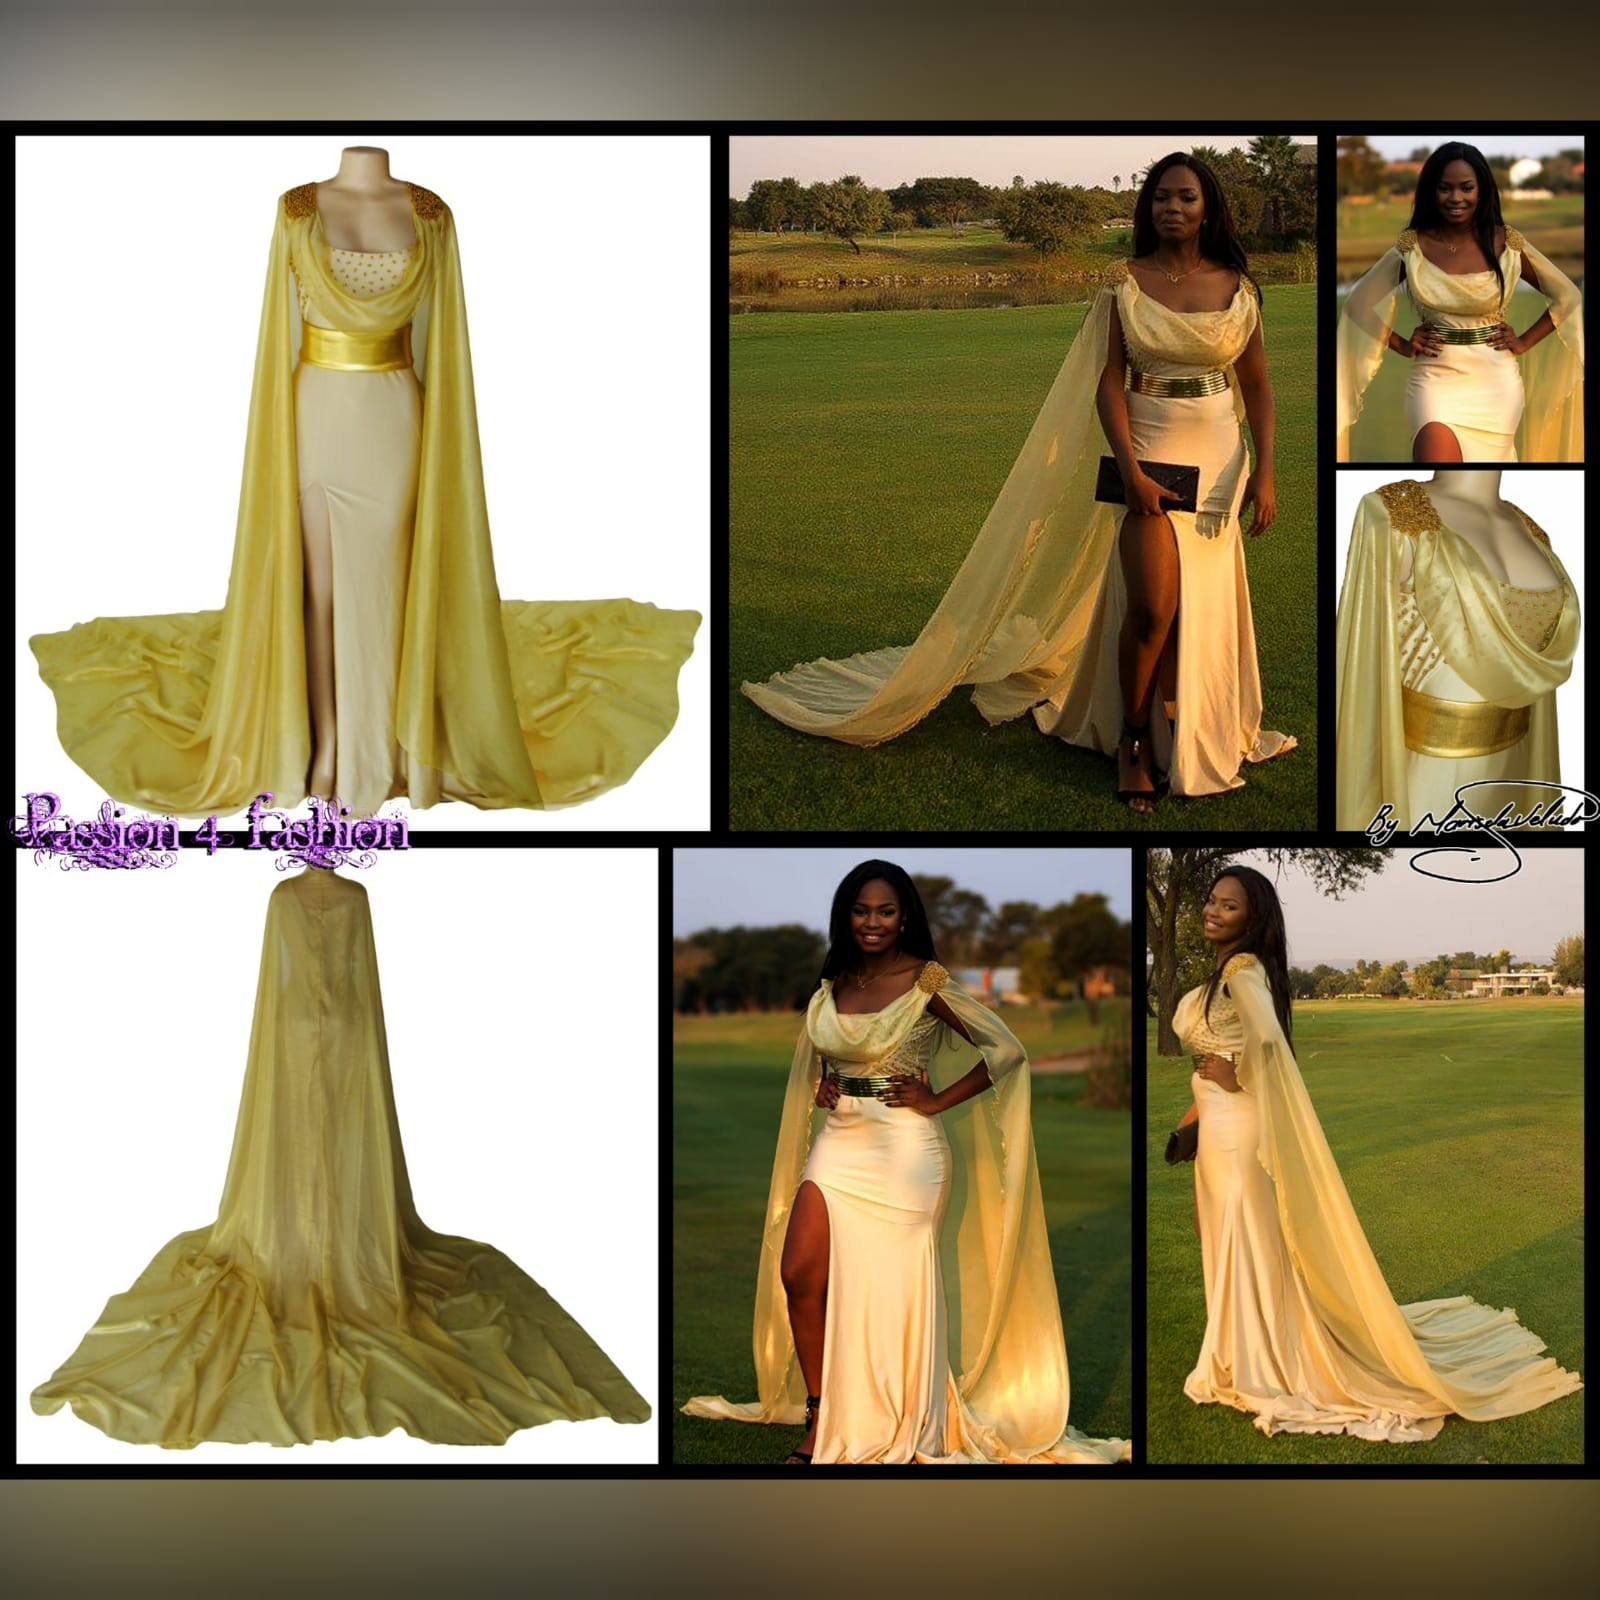 Gold long goddess inspired prom dress 3 gold long goddess inspired prom dress. Long fitted dress with a high slit and a train. With bust detailed with gold beads and a chiffon cowl neck, with a dramatic chiffon cape beaded on the shoulders. With a long train.